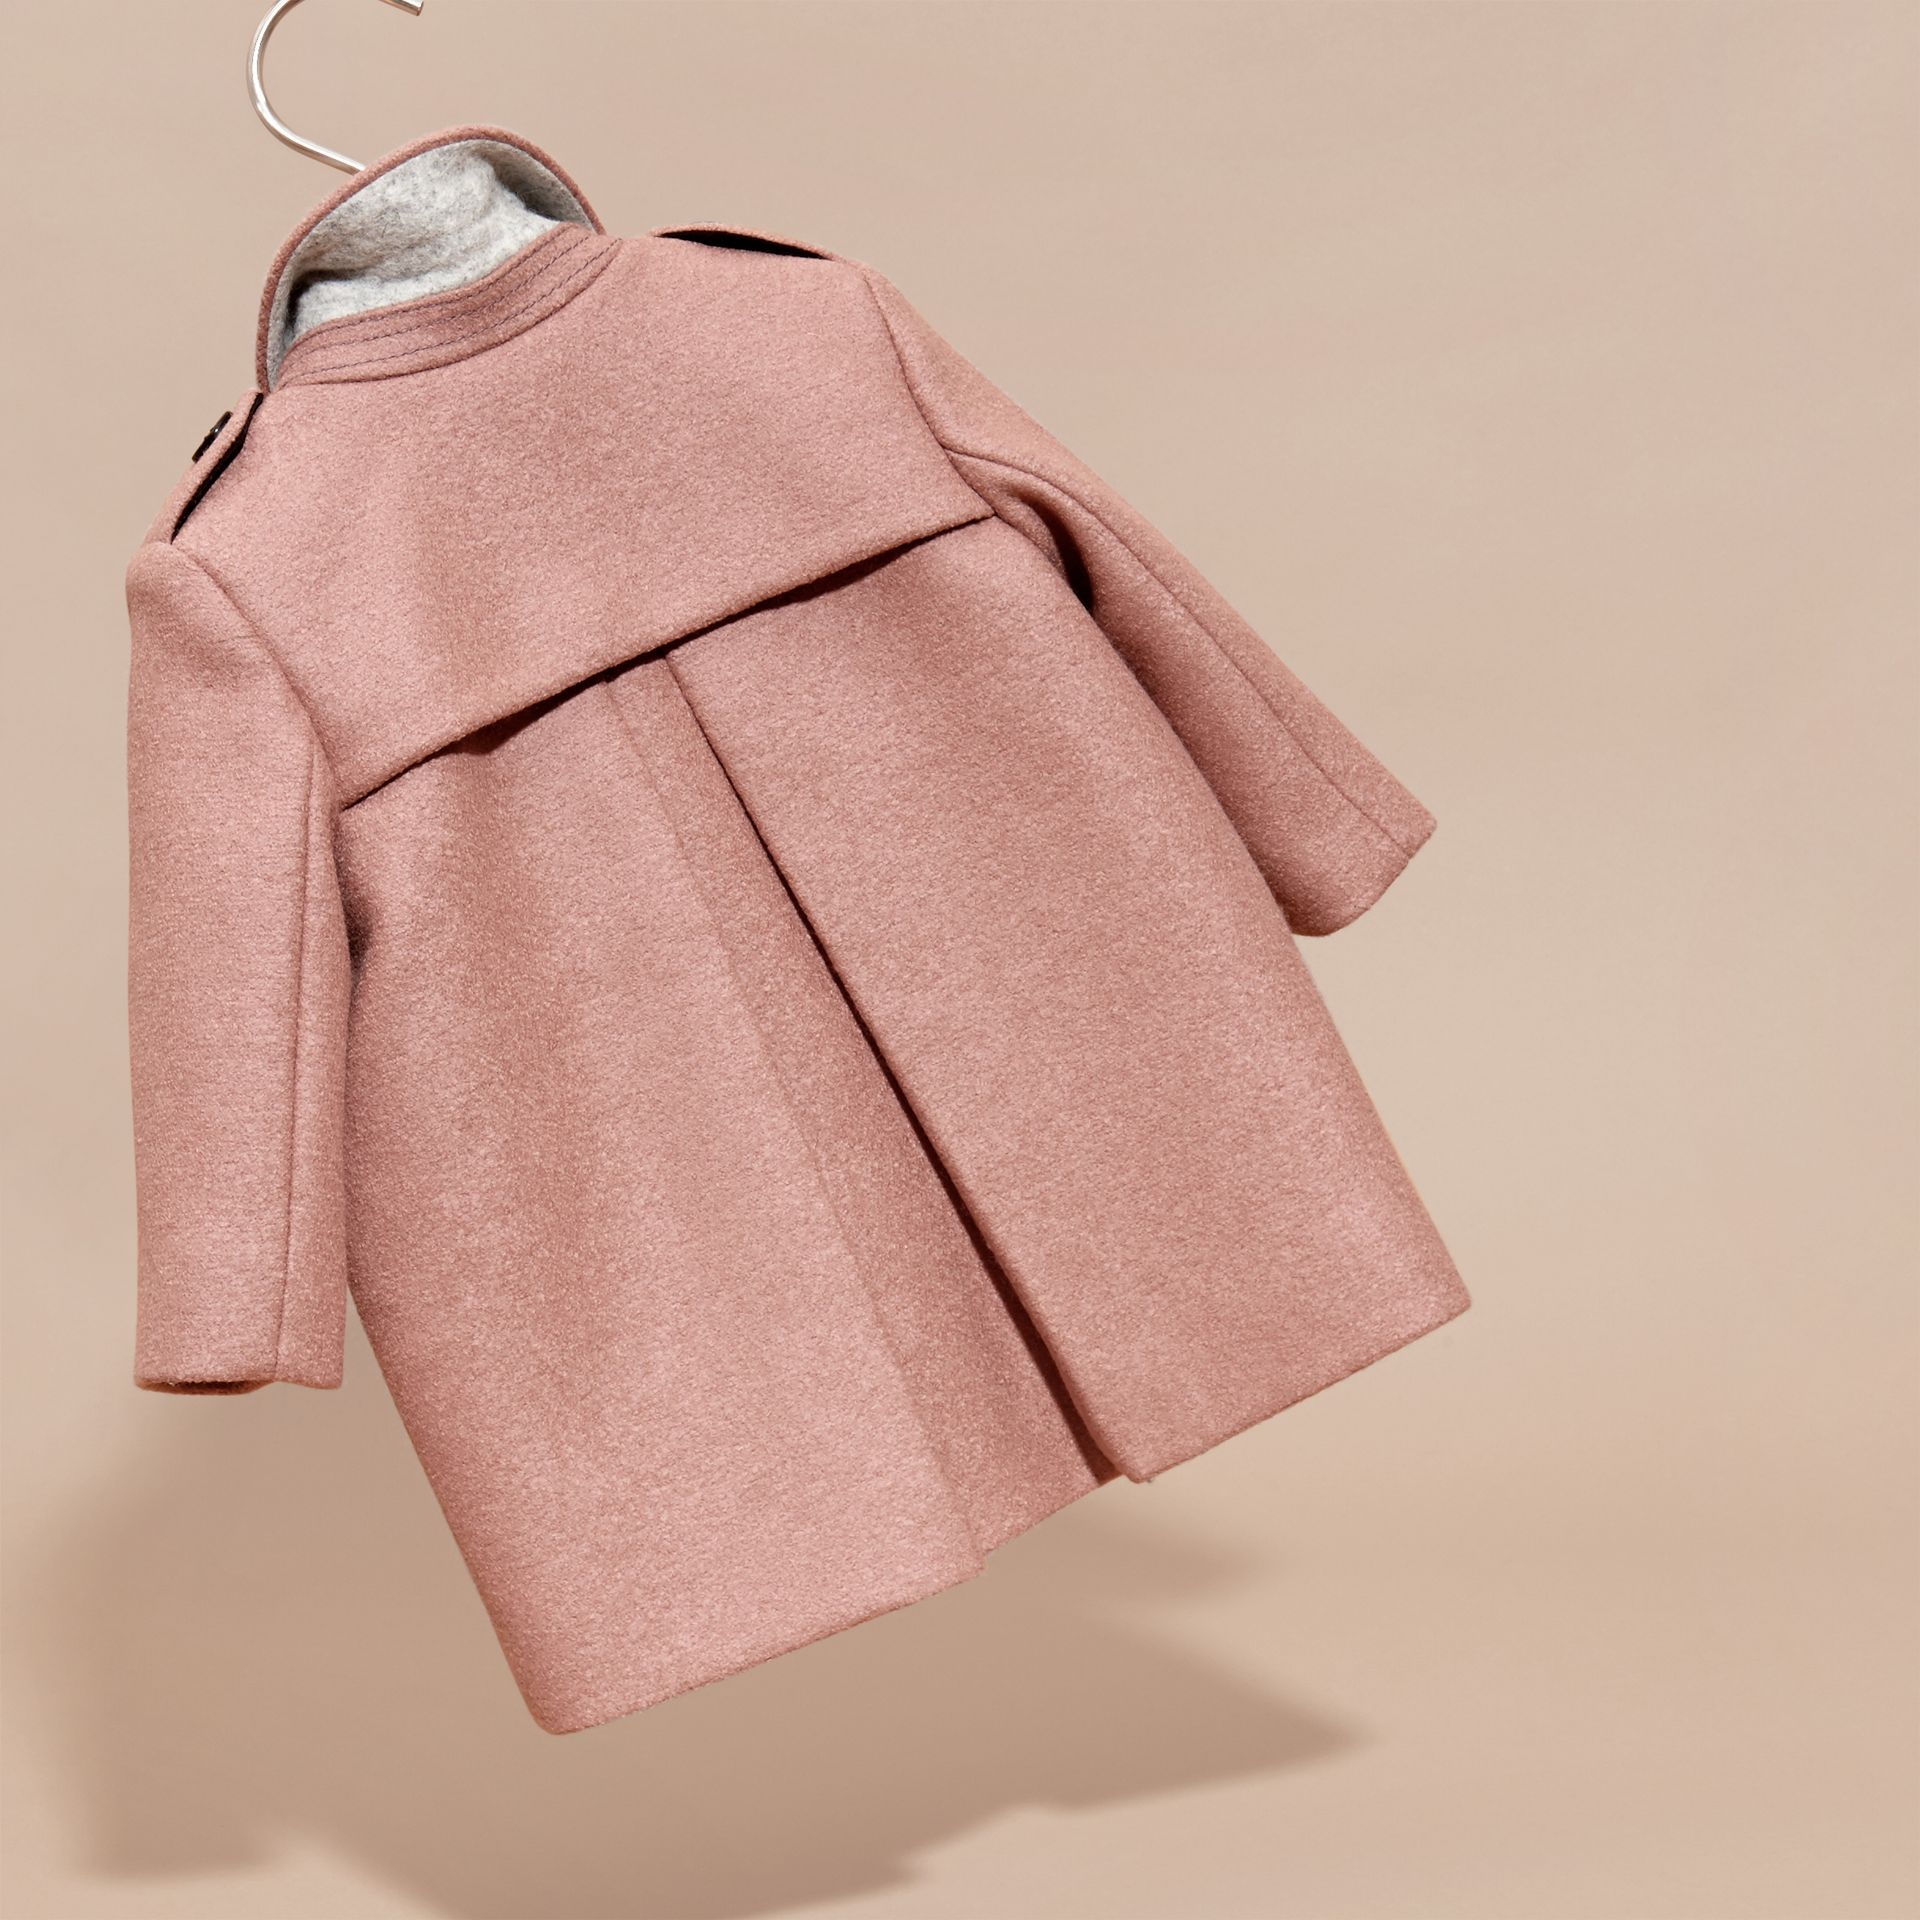 Pale ash rose Tailored Wool Coat - gallery image 4